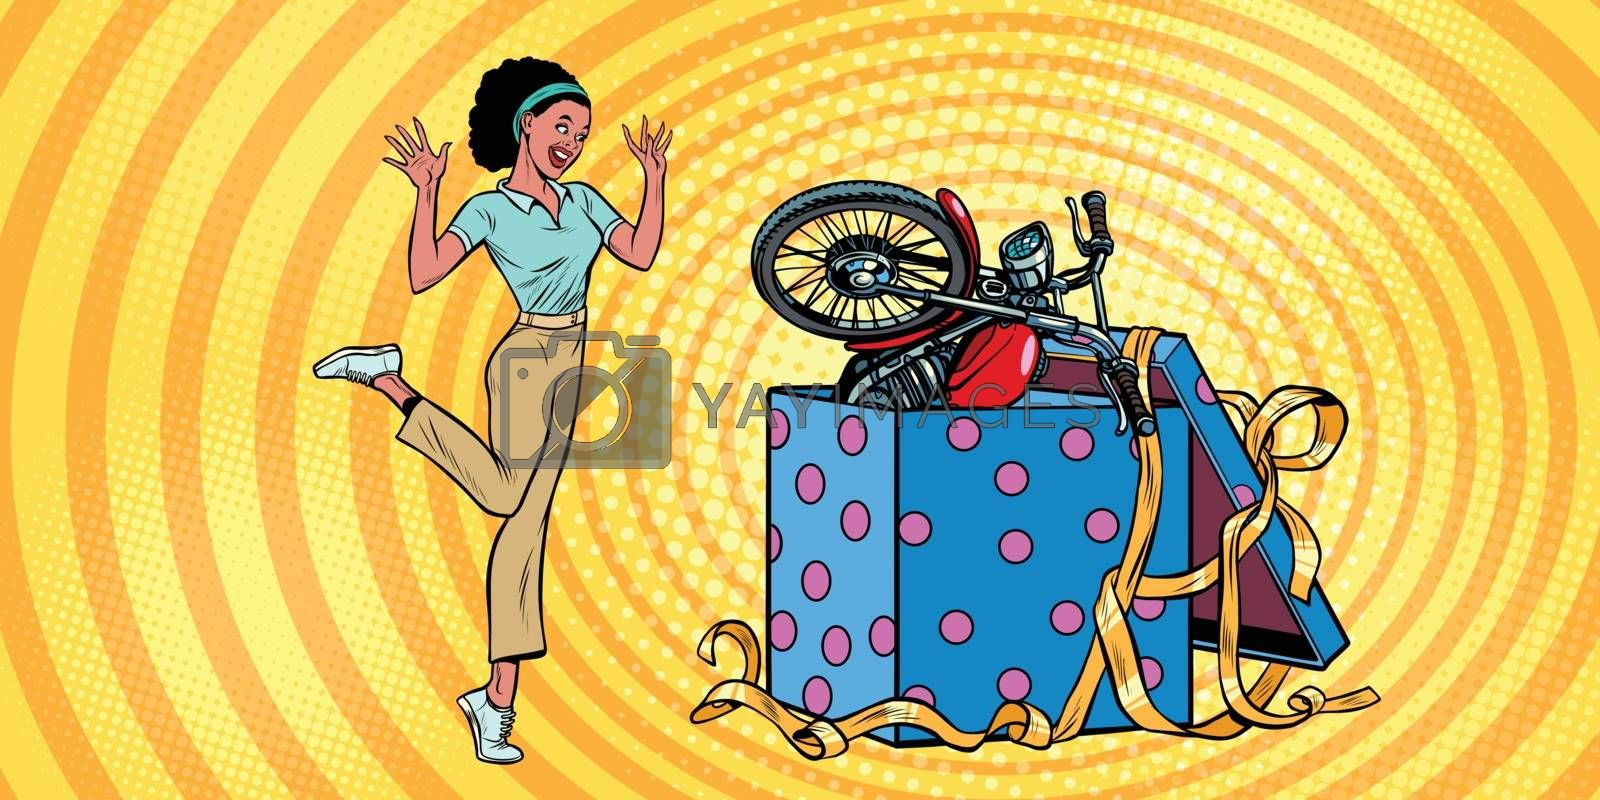 motorcycle holiday gift box. African woman funny reaction joy. Pop art retro vector illustration vintage kitsch 50s 60s